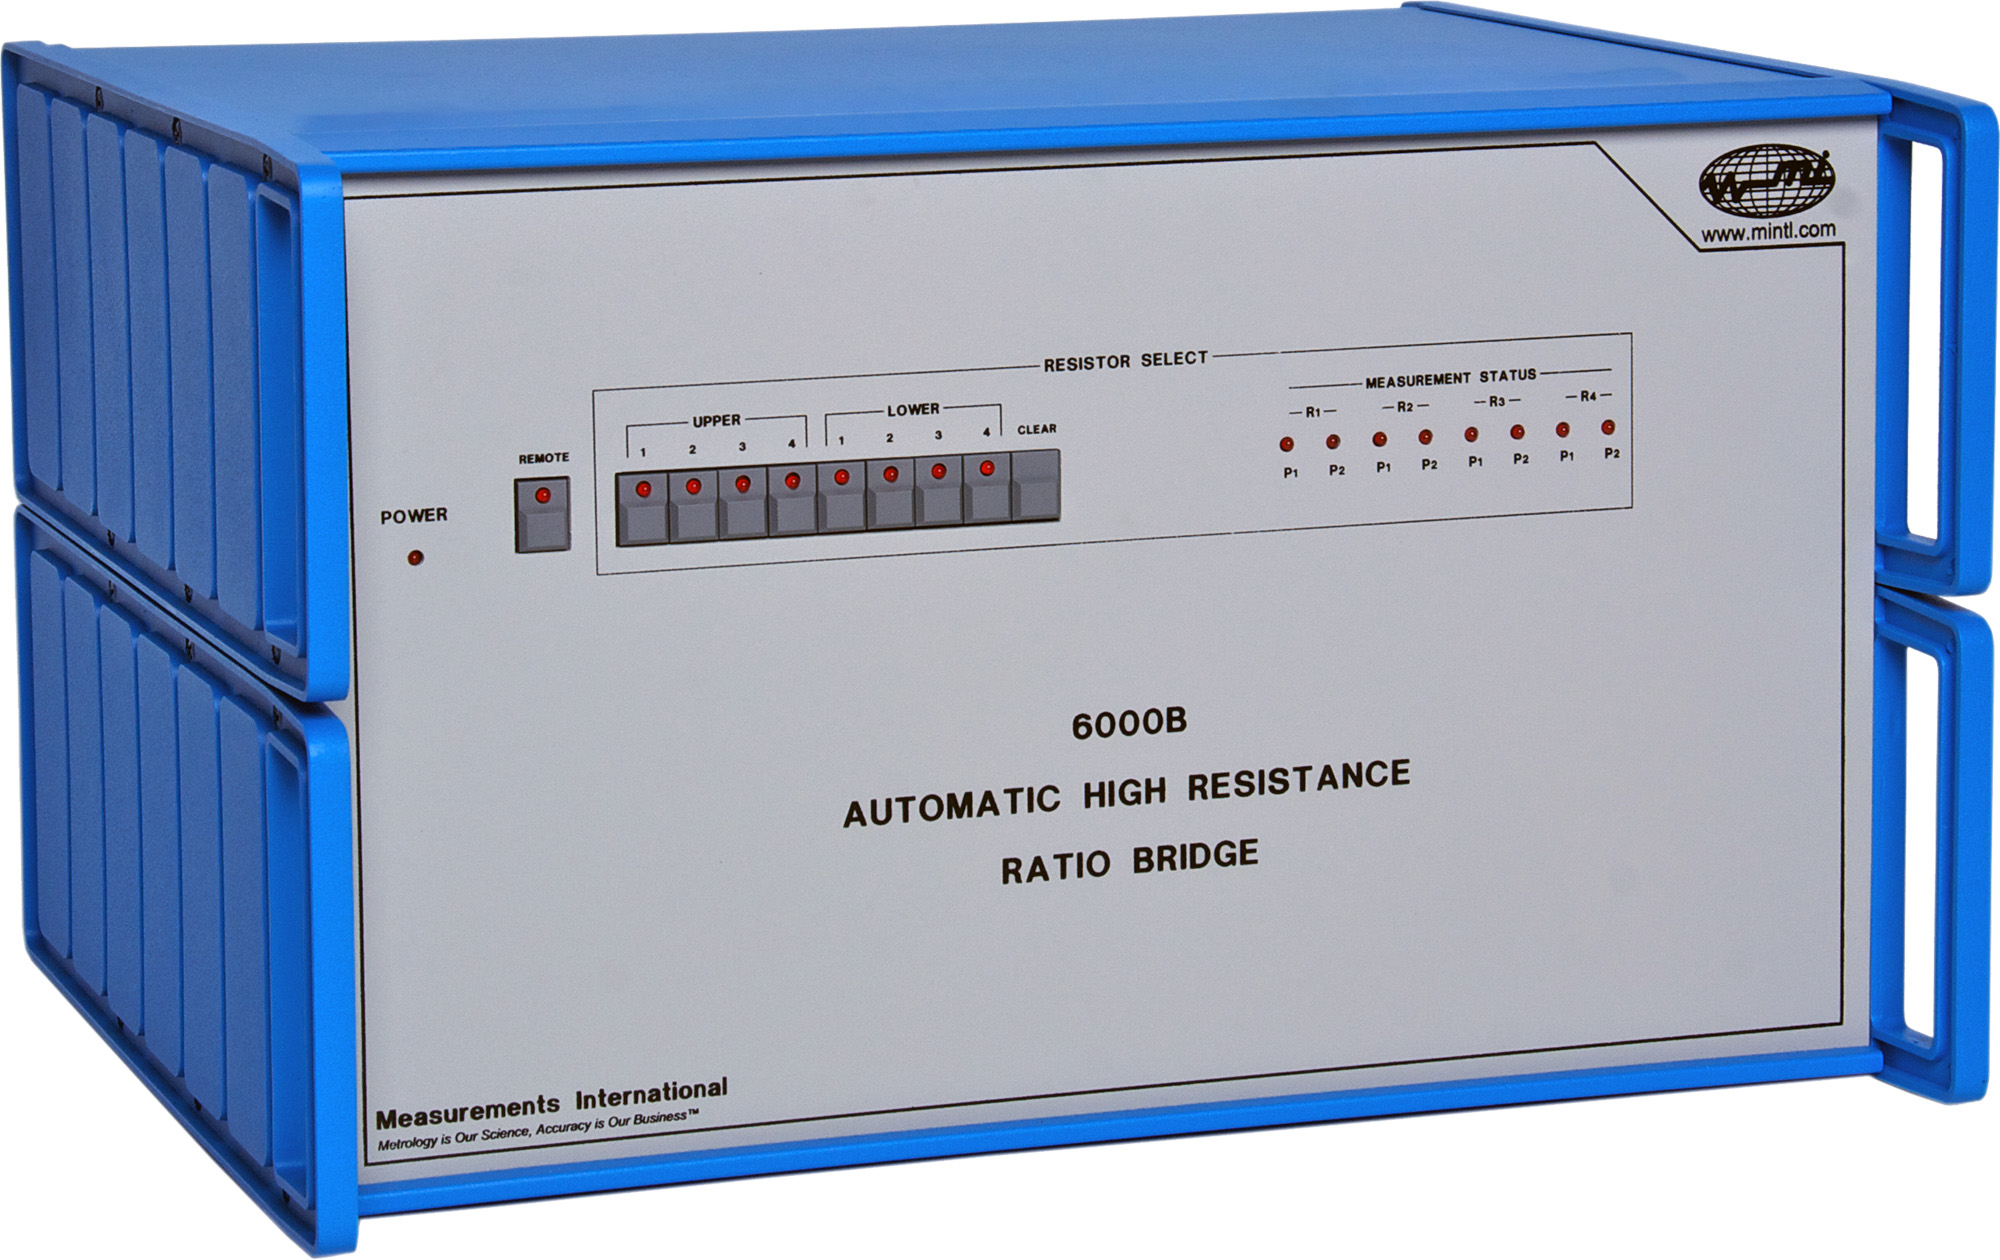 6000B AccuBridge Automatic High Resistance Ratio Bridge